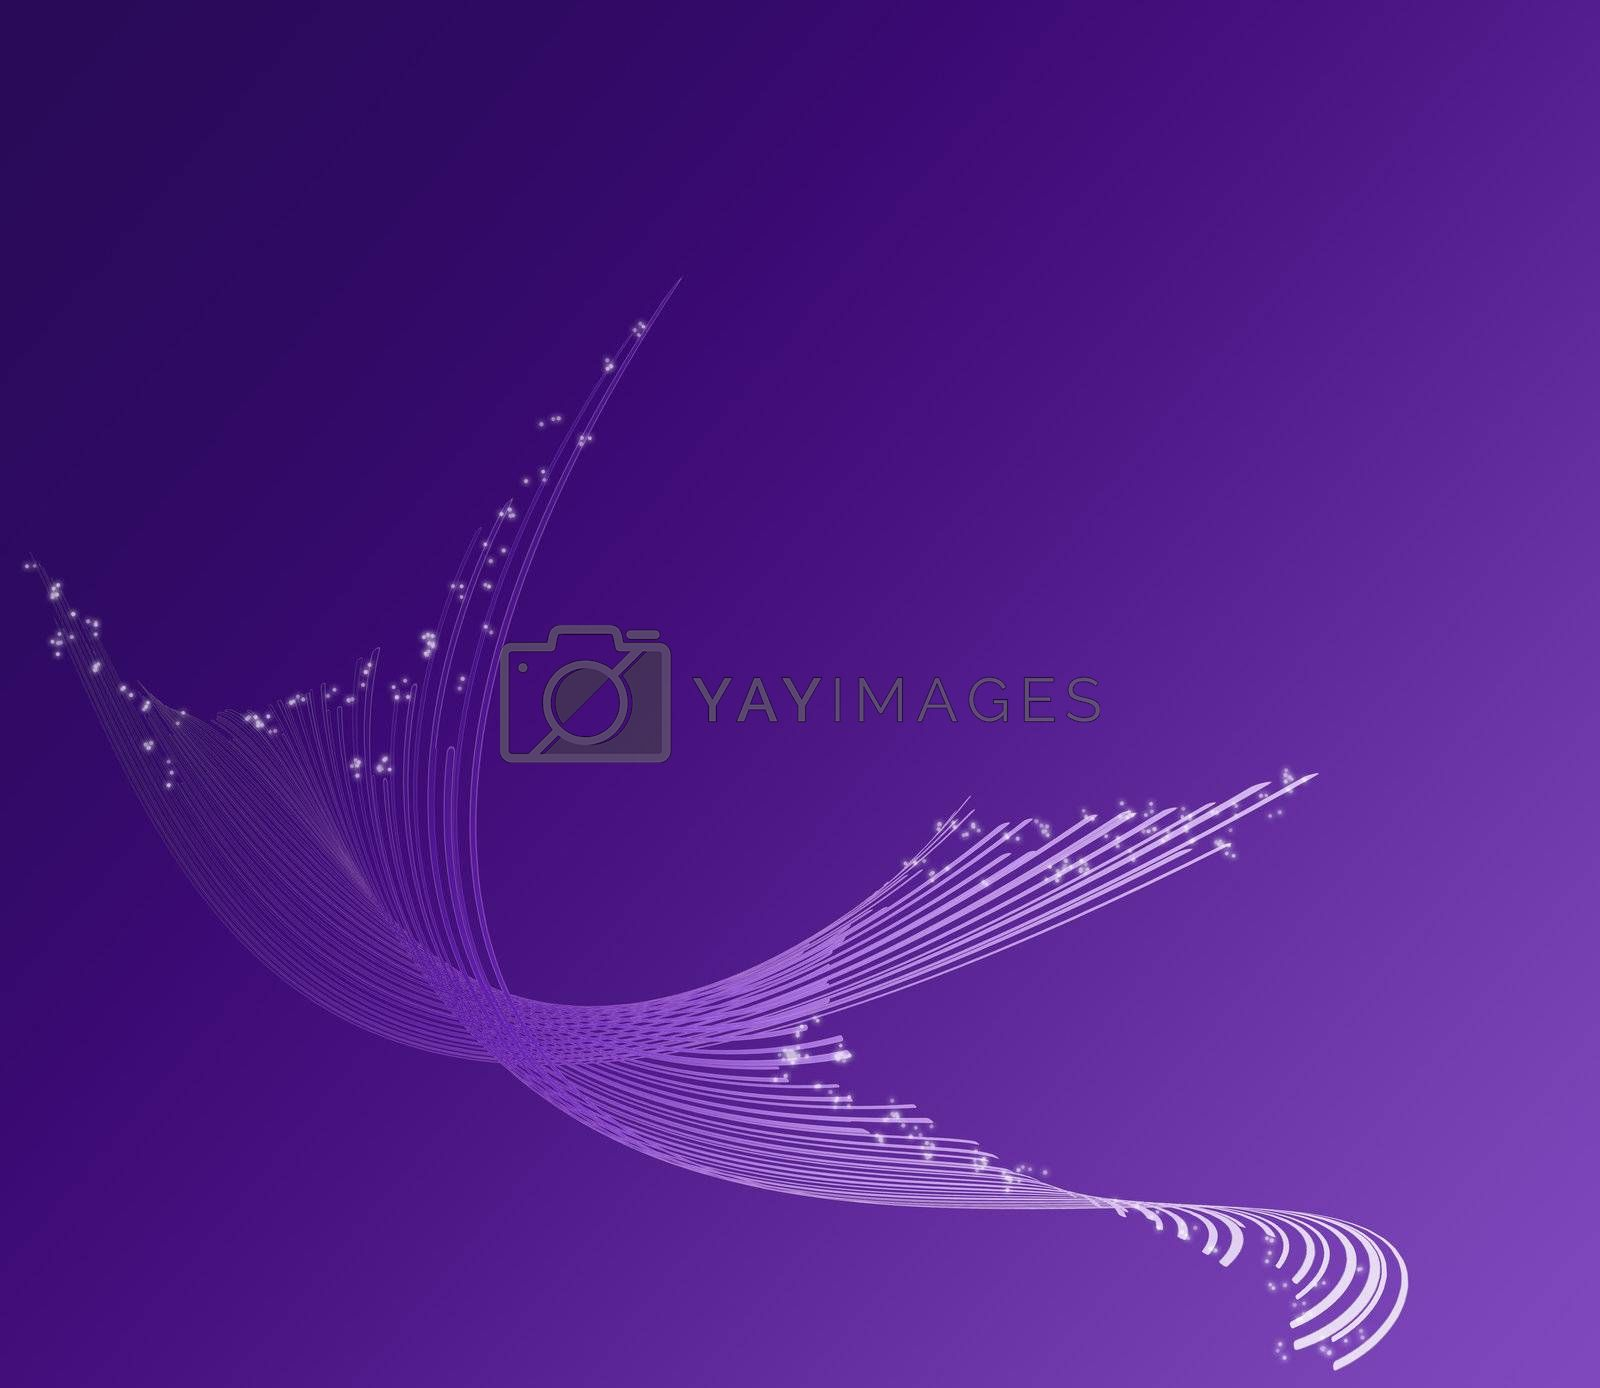 decoration on white paper with purple background gradient